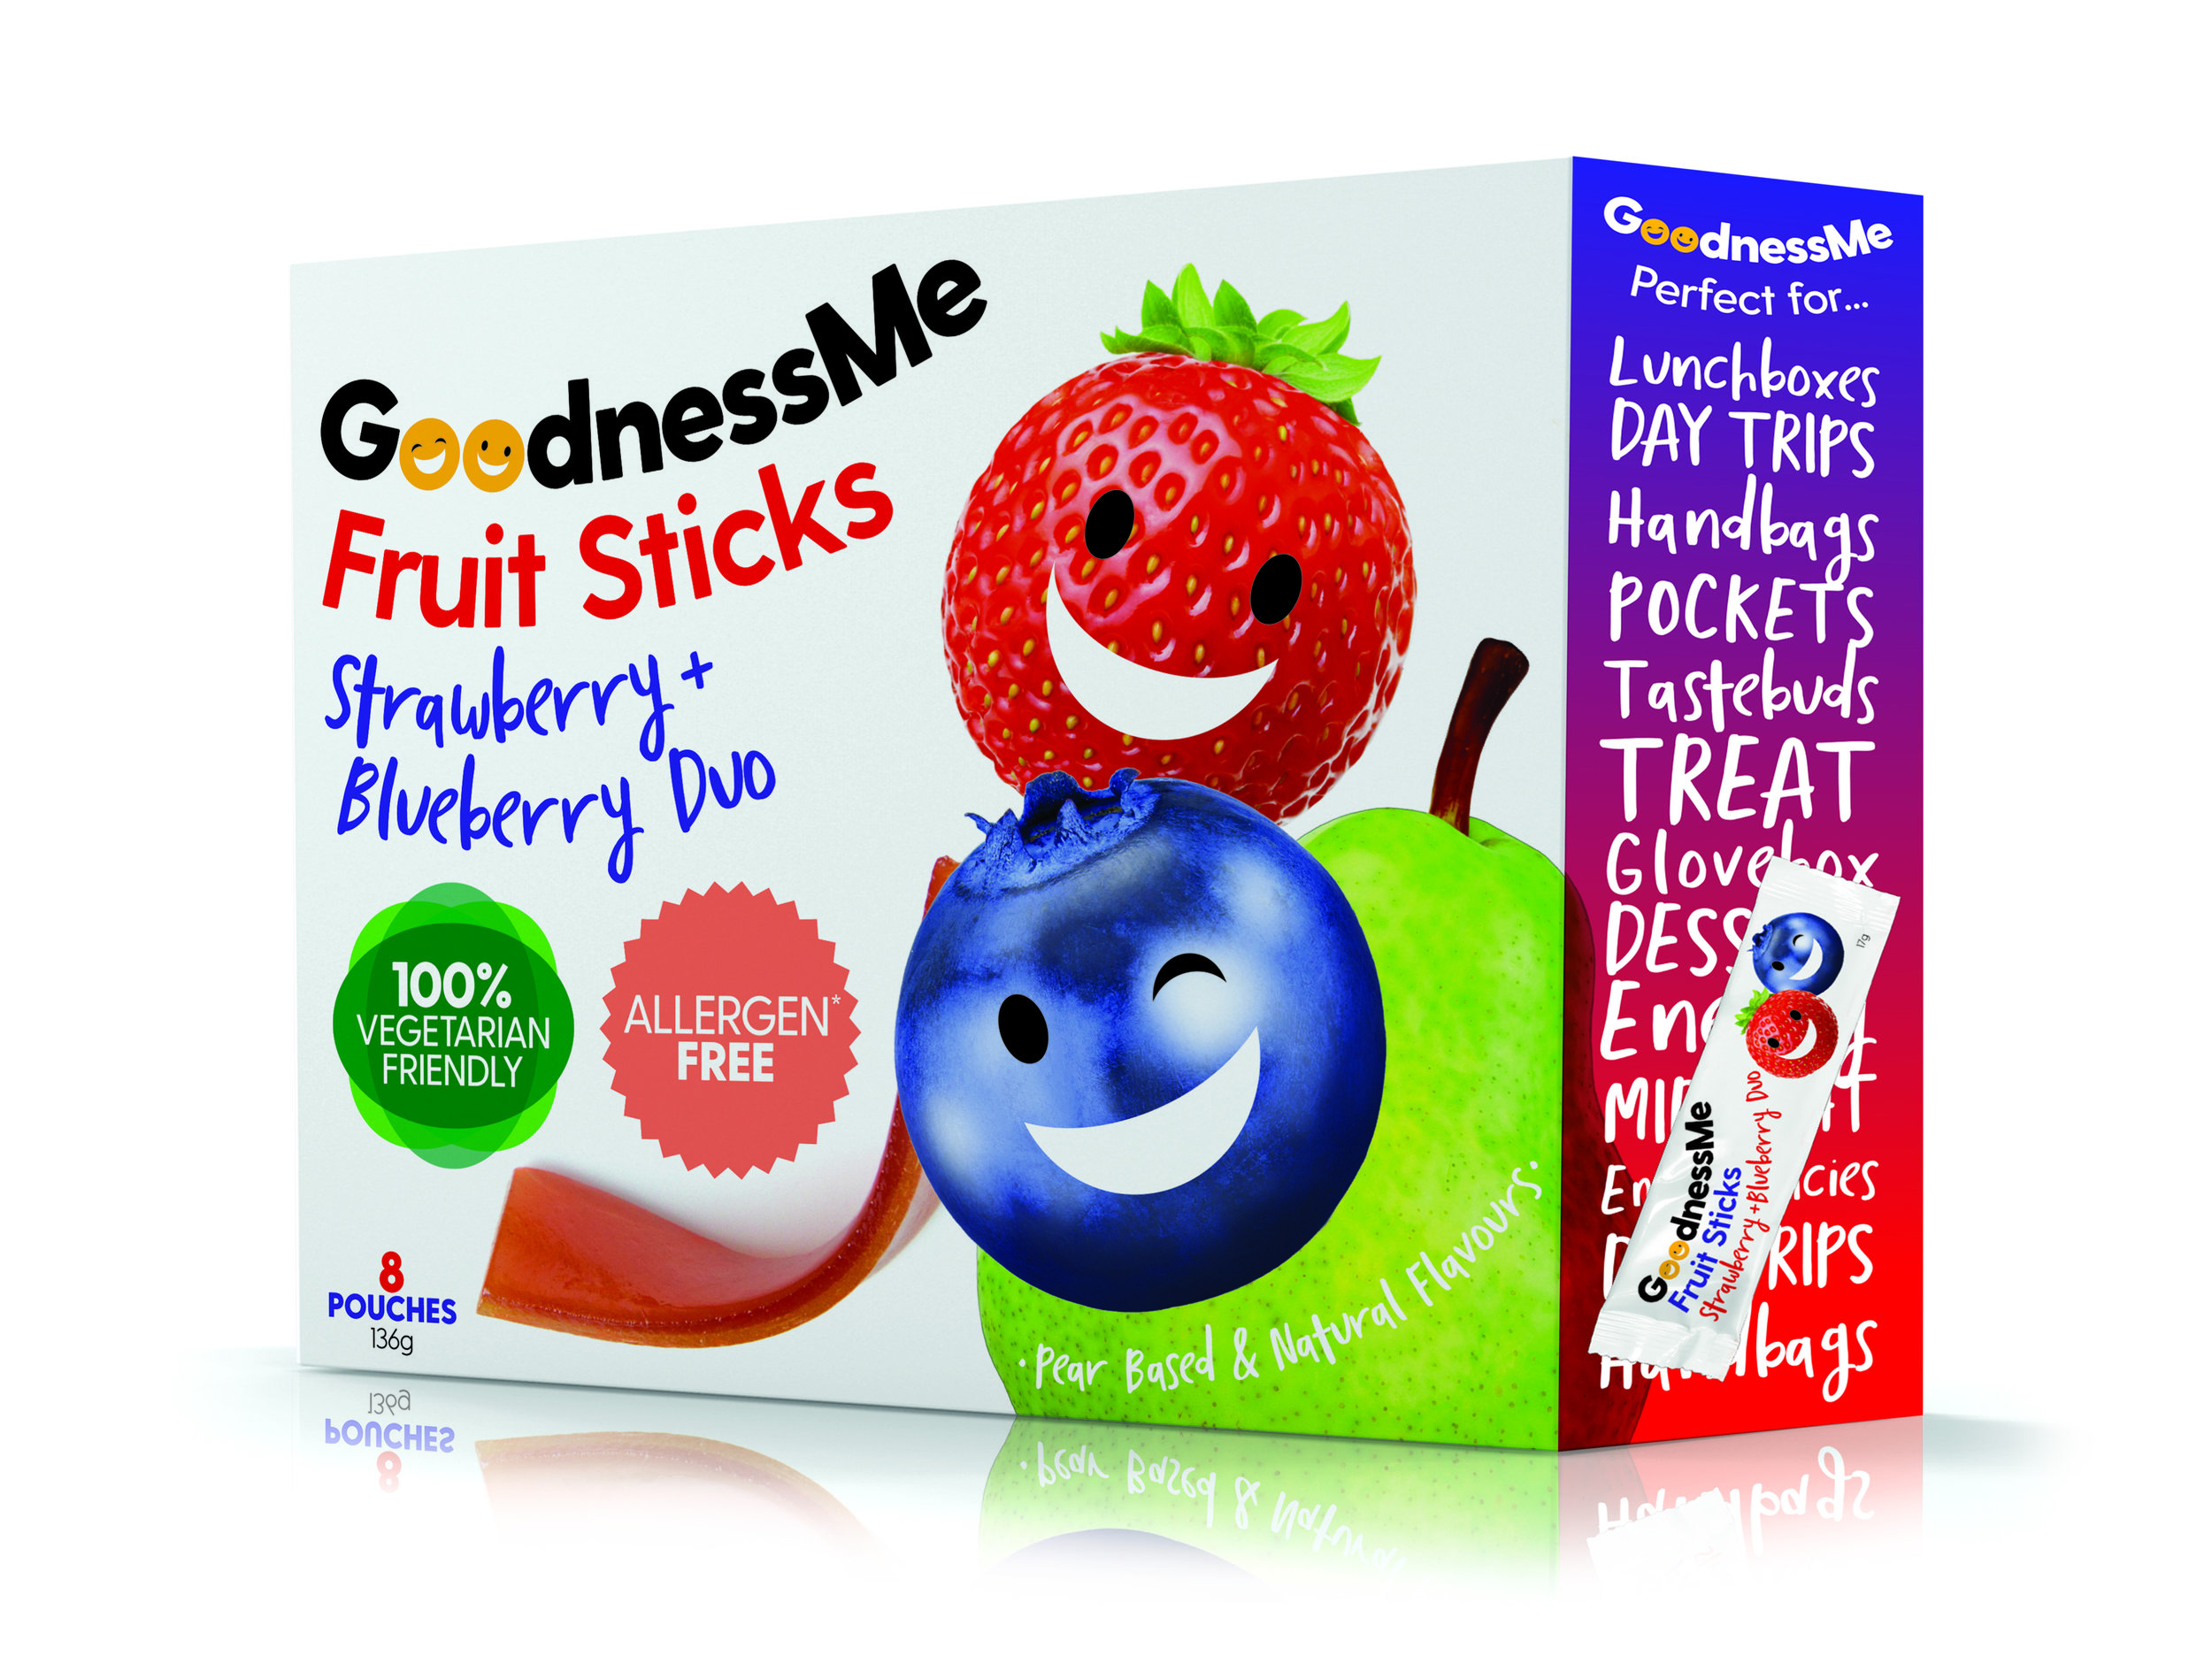 NZGF-GoodnessMe-Fruit-Sticks-Pack-Strawberry-Blueberry-02.jpg